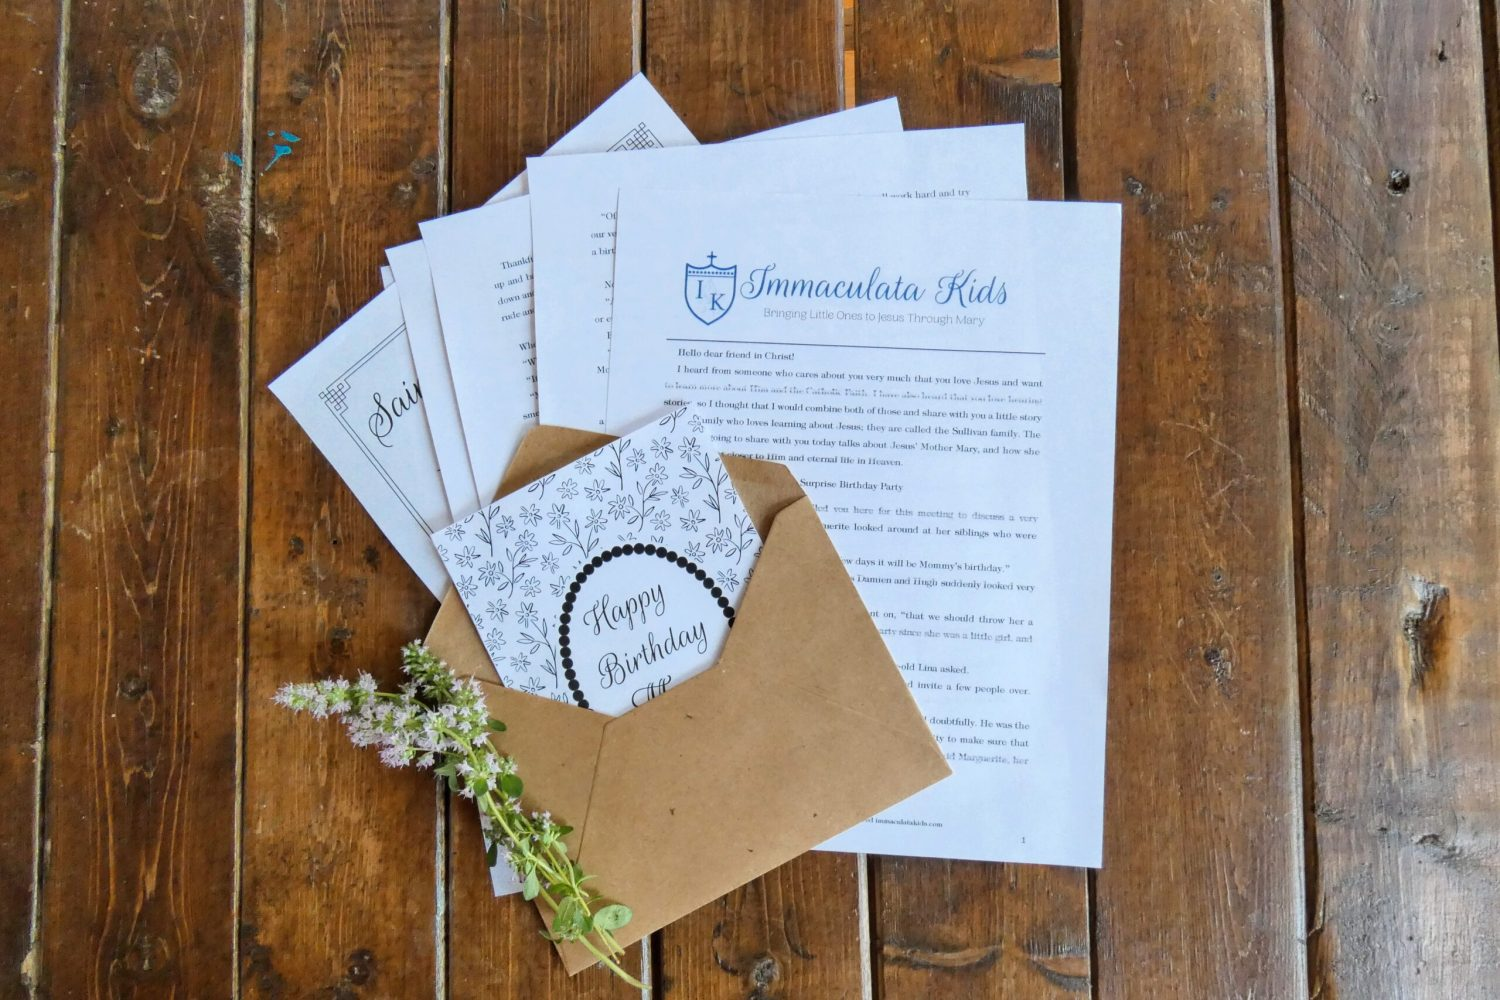 Immaculata Kids Monthly Letter Subscription